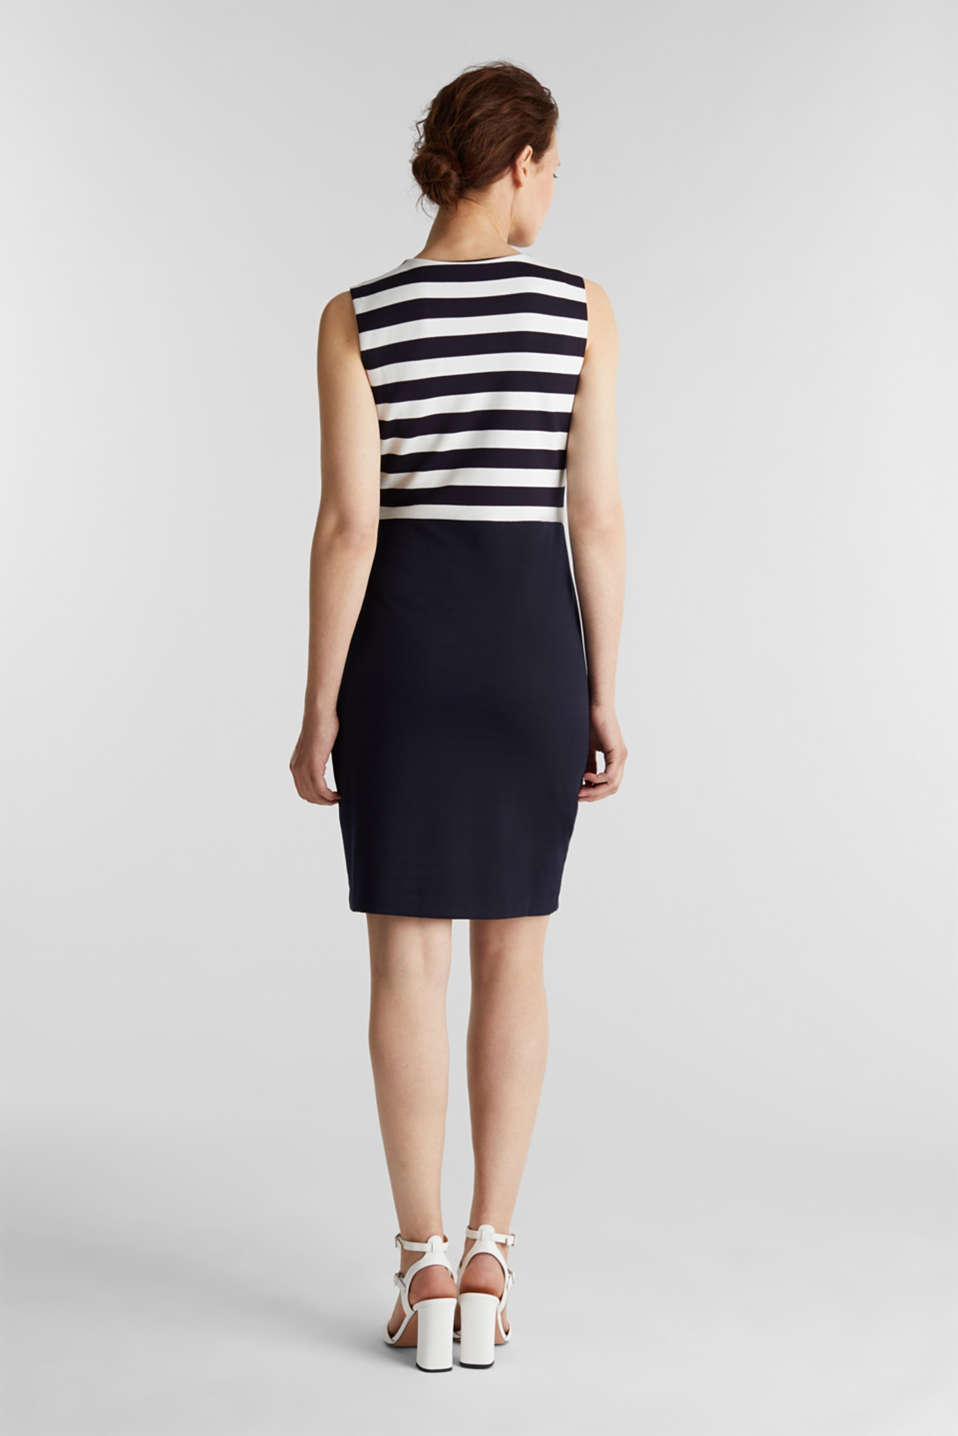 Sheath dress made of firm stretch jersey, NAVY, detail image number 2